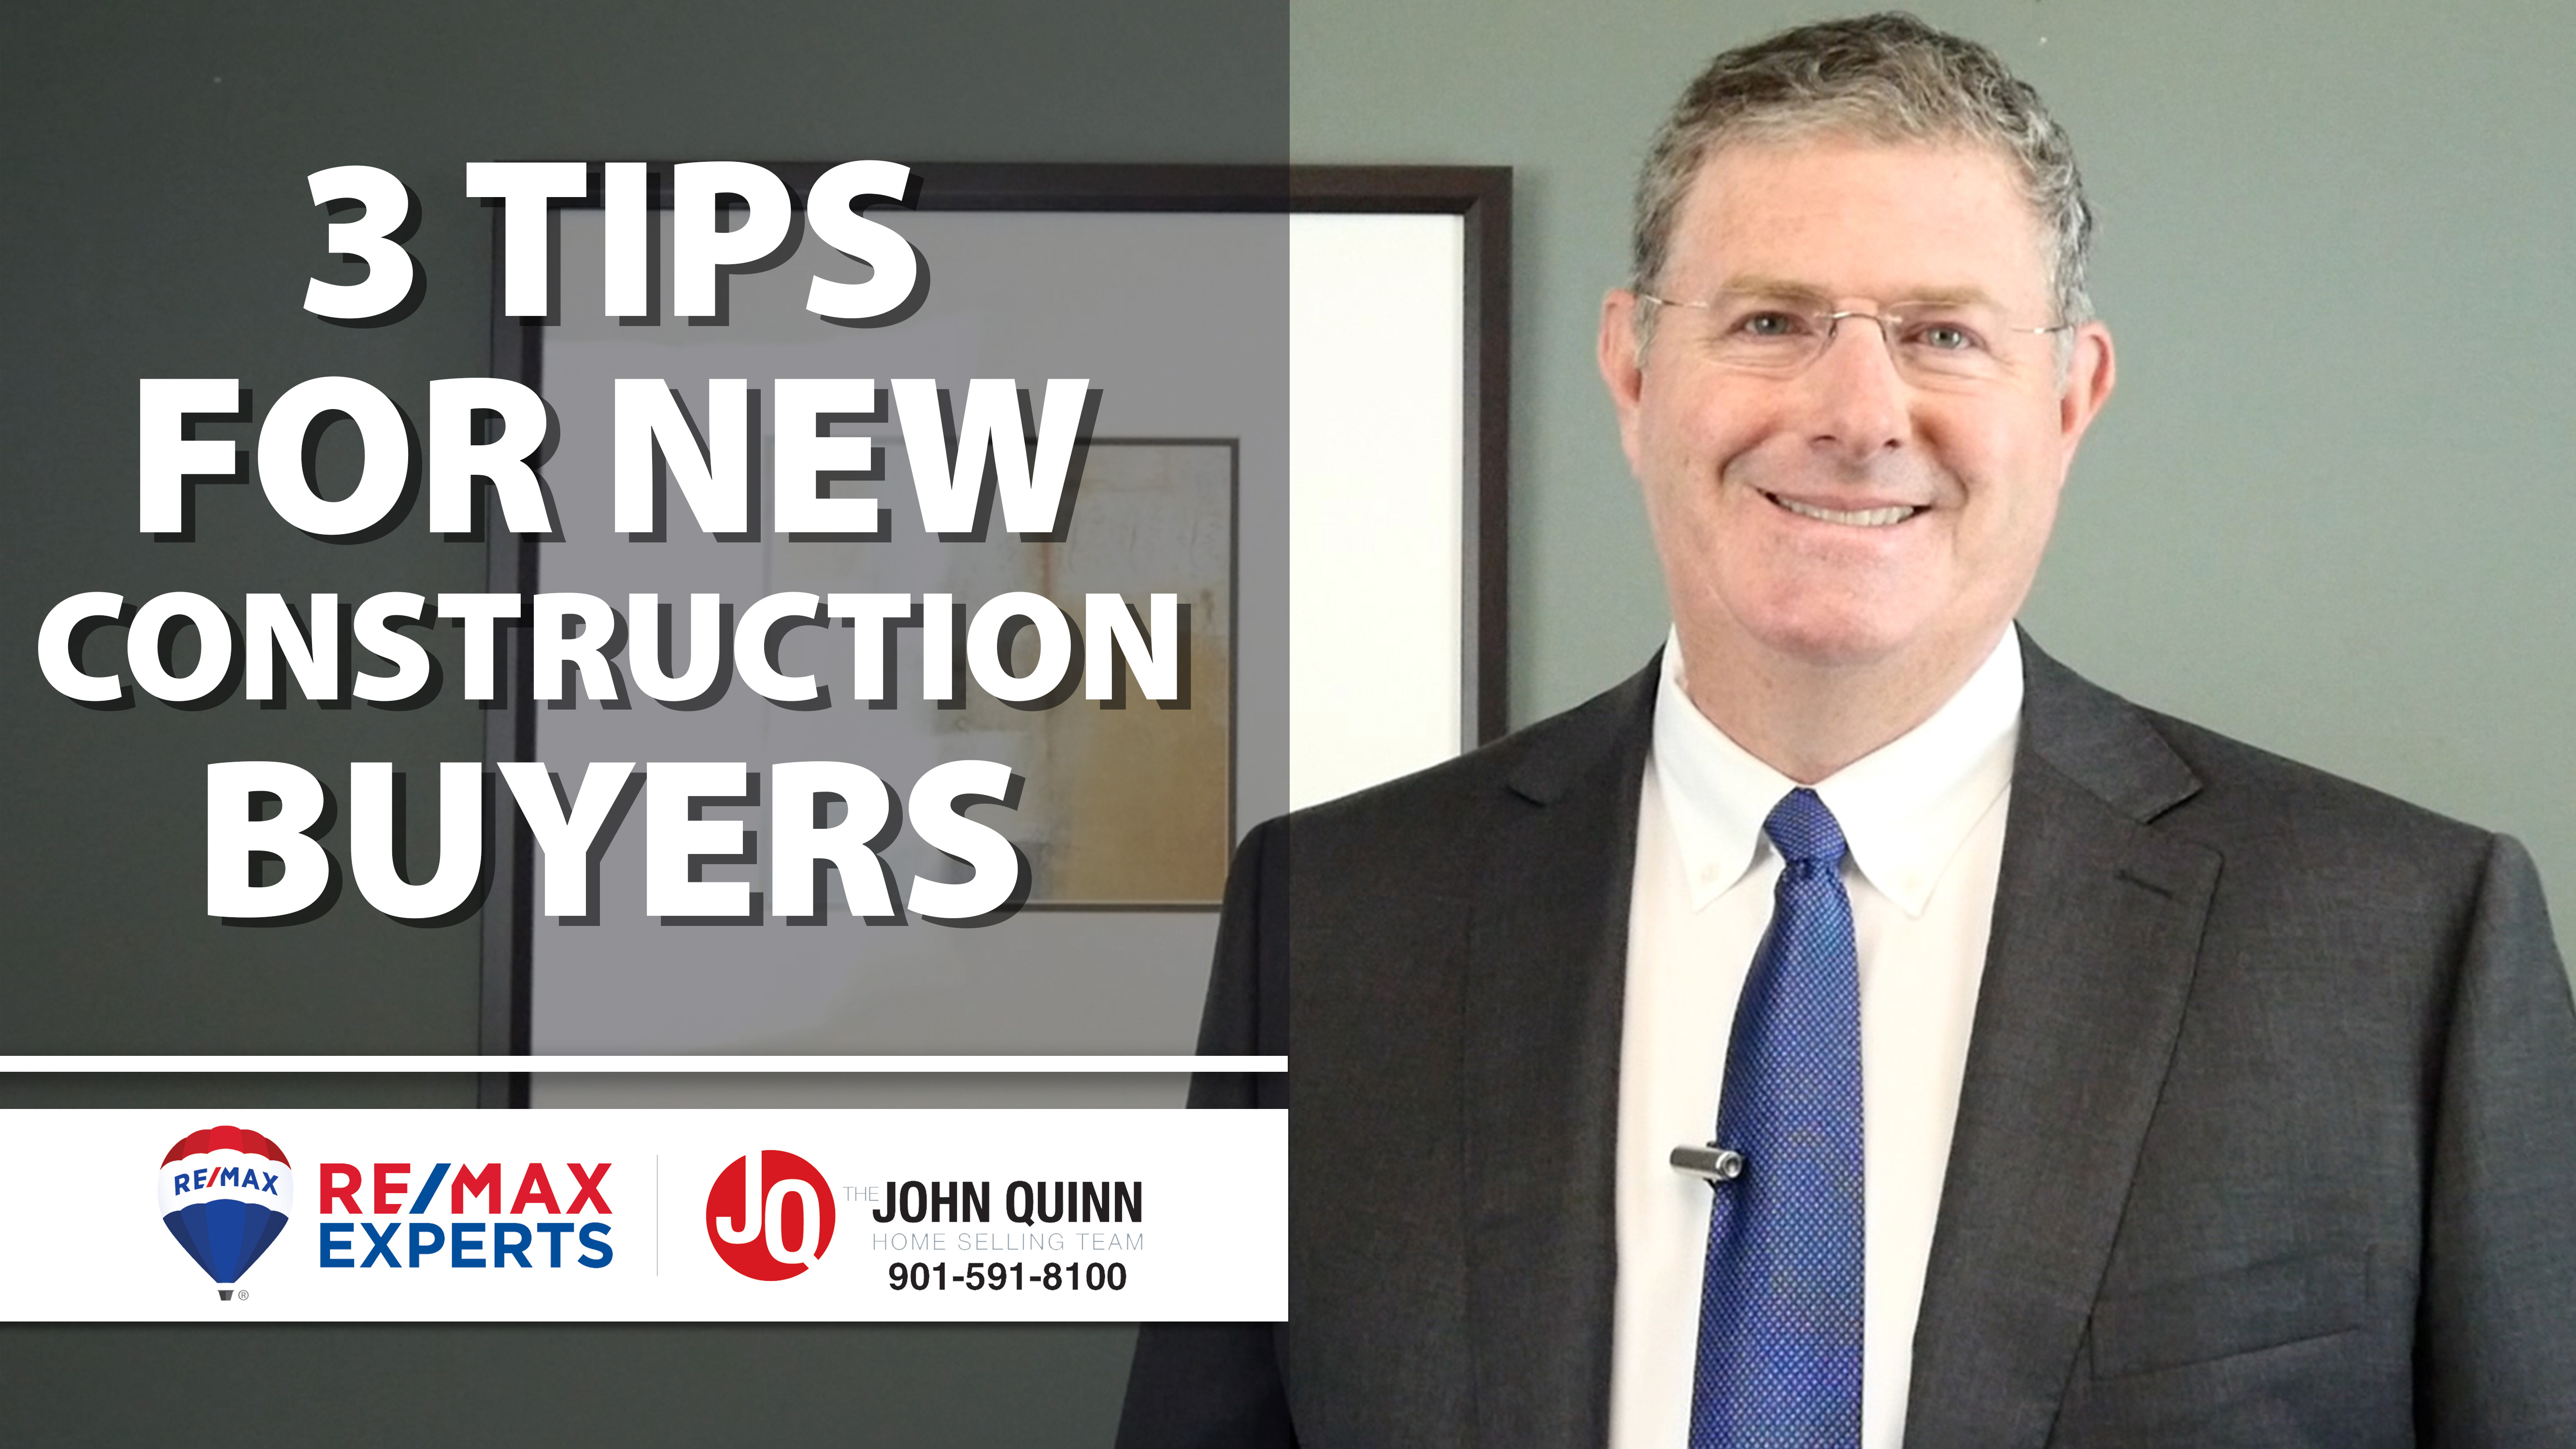 Saving Time & Money on New Construction Purchases